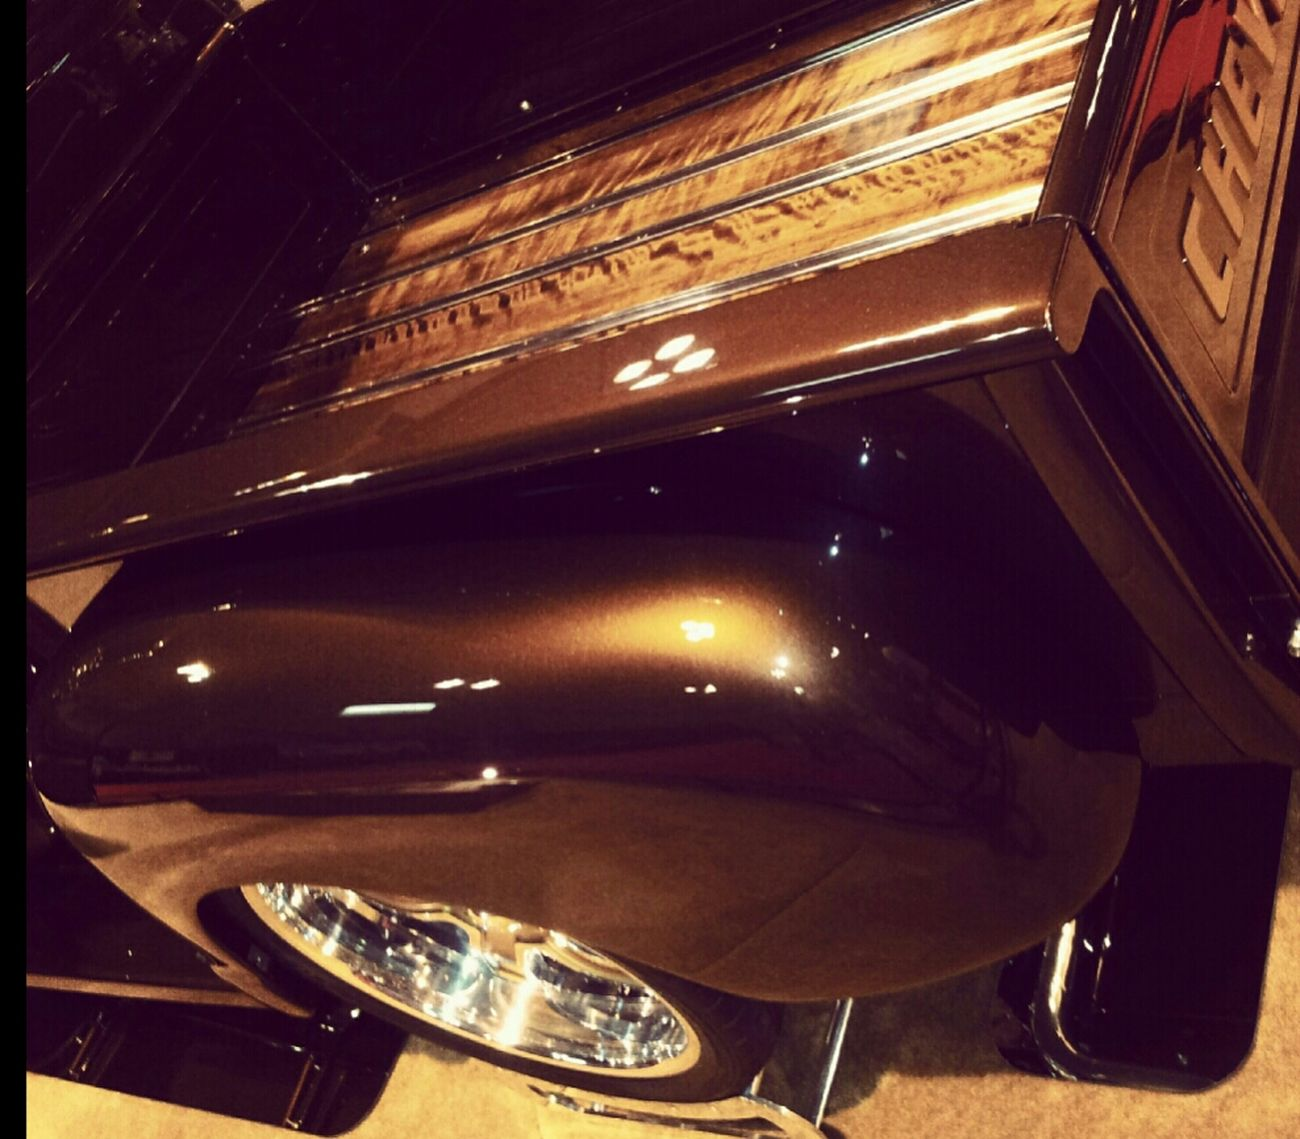 Wood Vintage Chocolate Taking Photos Oldschool Truck TheMinimals (less Edit Juxt Photography) Chevy Brown Chrome Jus Because